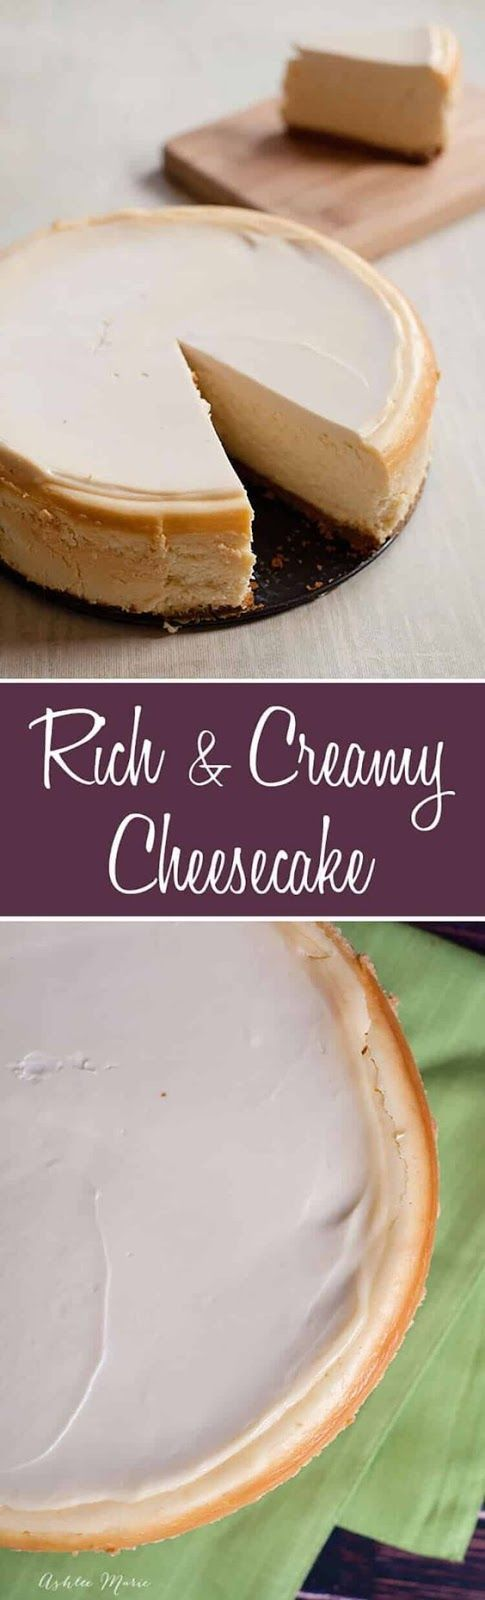 I have tried many cheesecakes over the years – Schoko Käsekuchen – Color Photo …